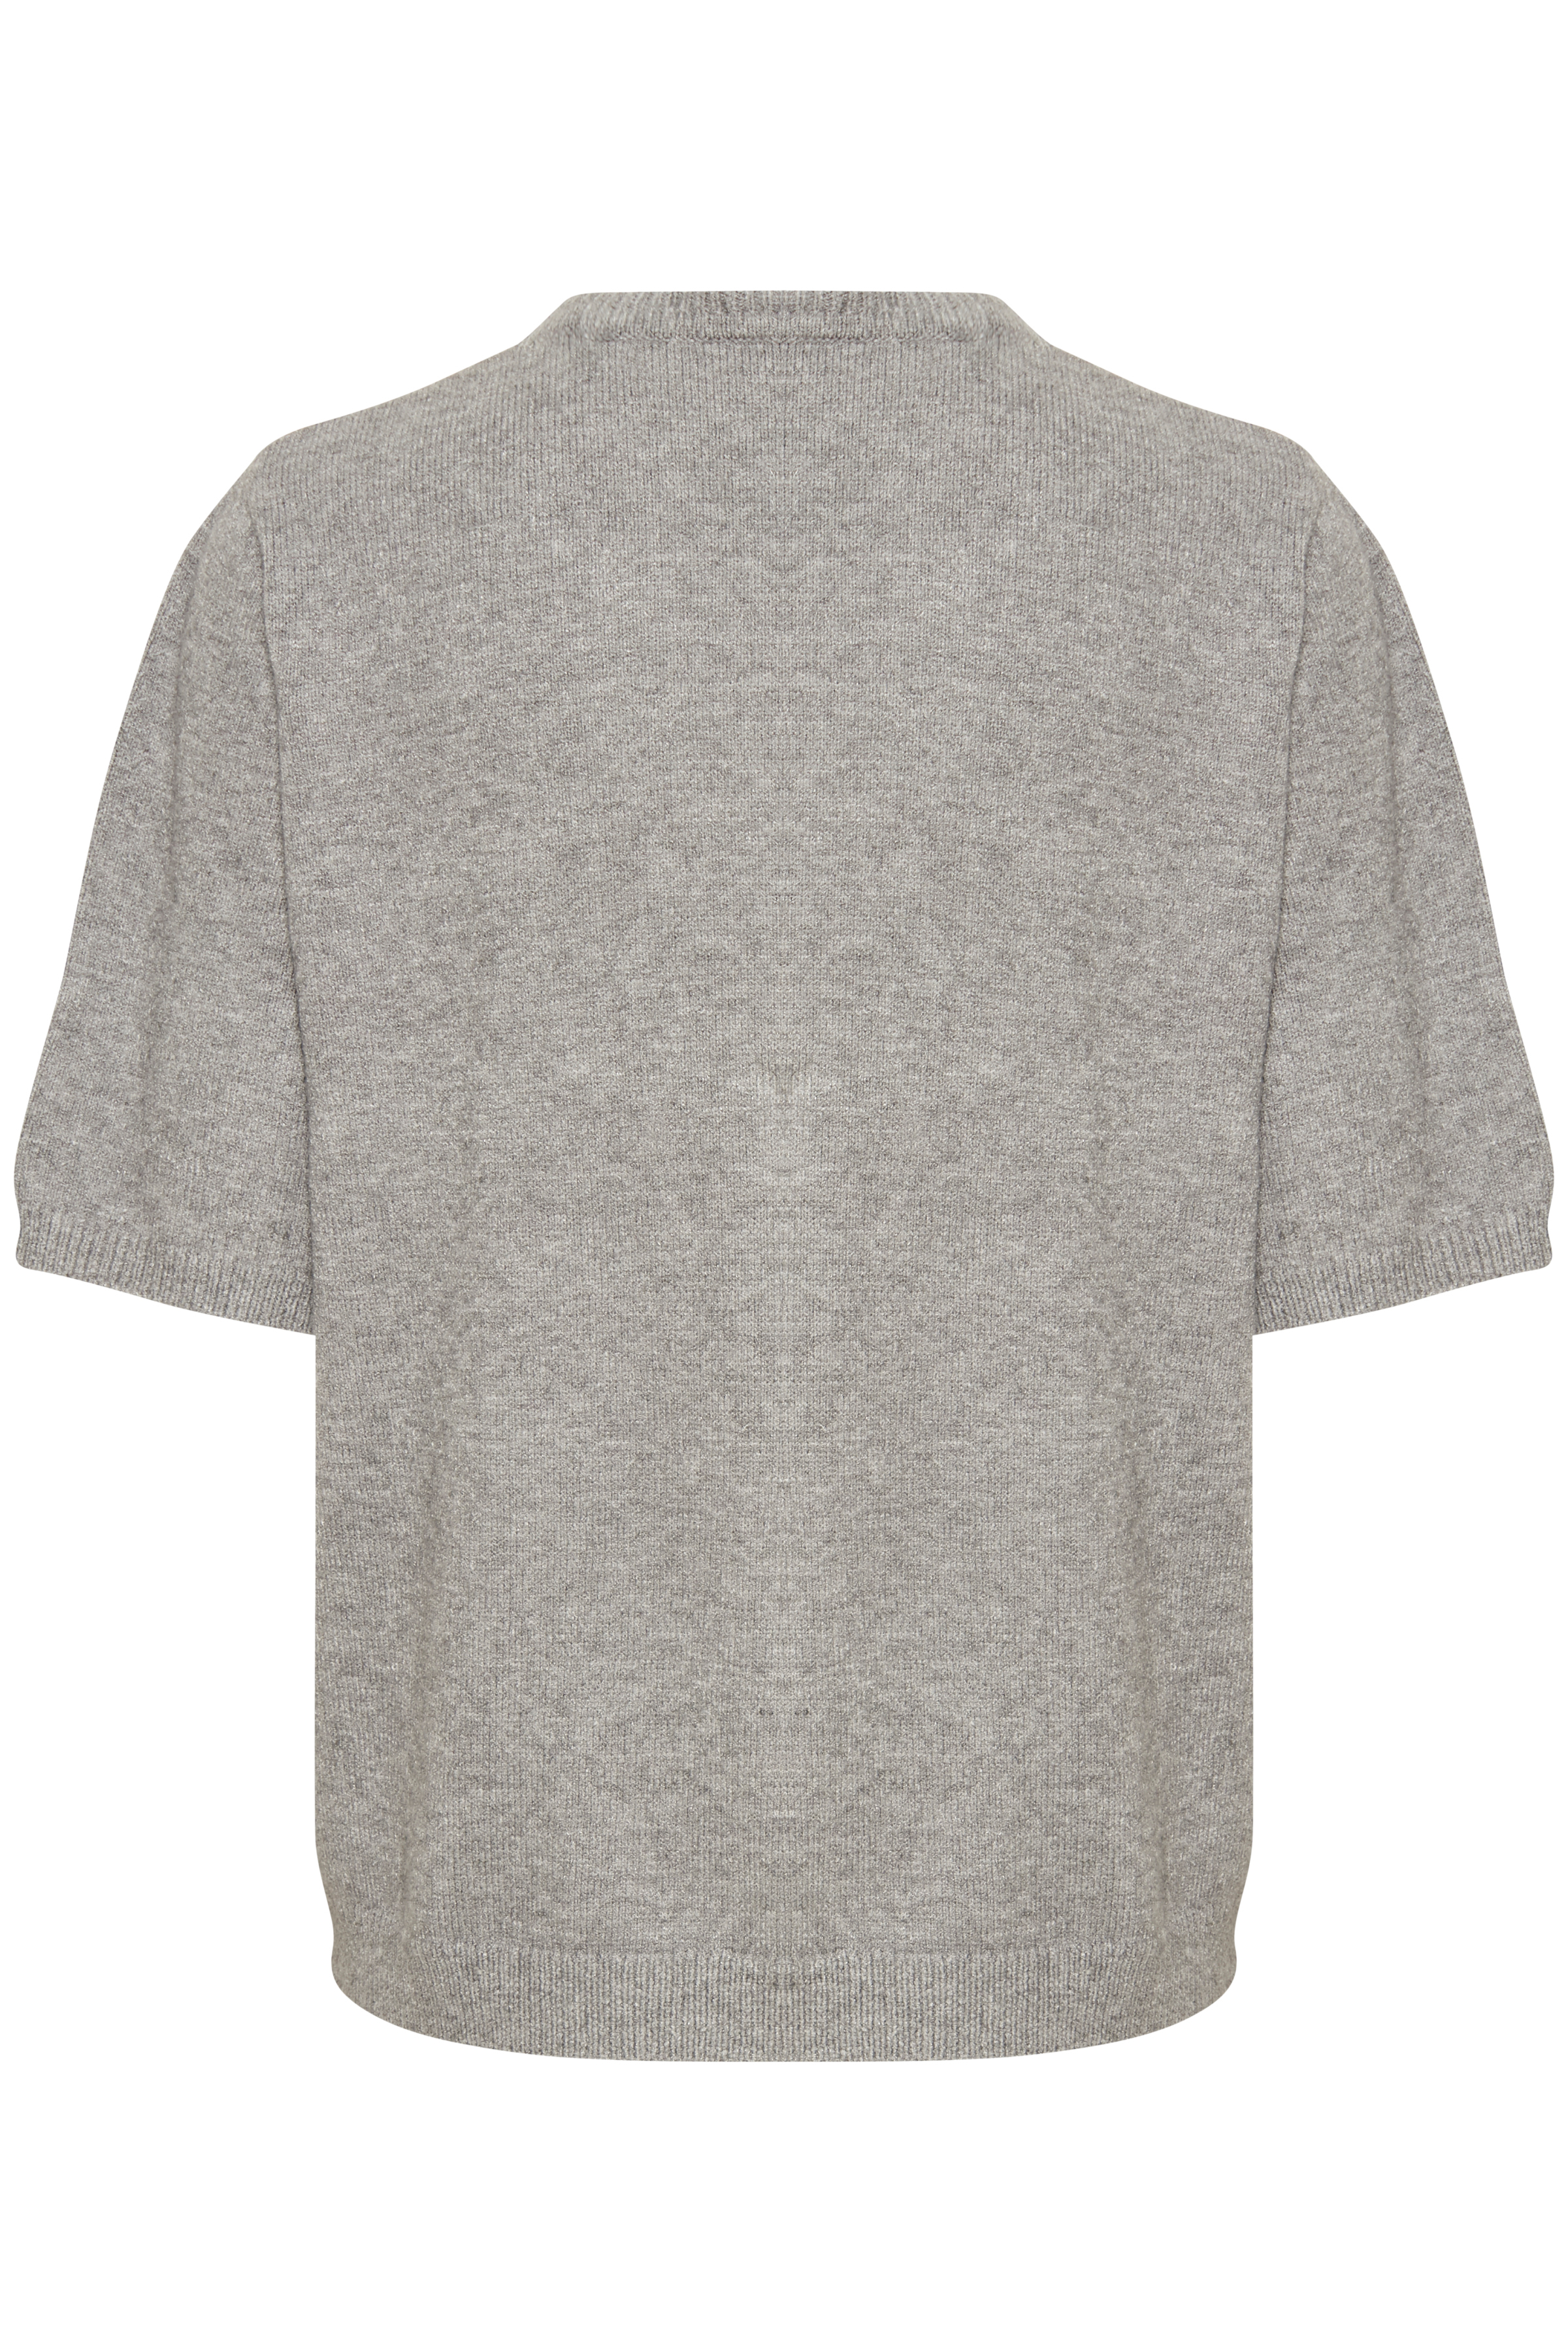 Med. Grey Mel. T-shirt from b.young – Buy Med. Grey Mel. T-shirt from size XS-XXL here